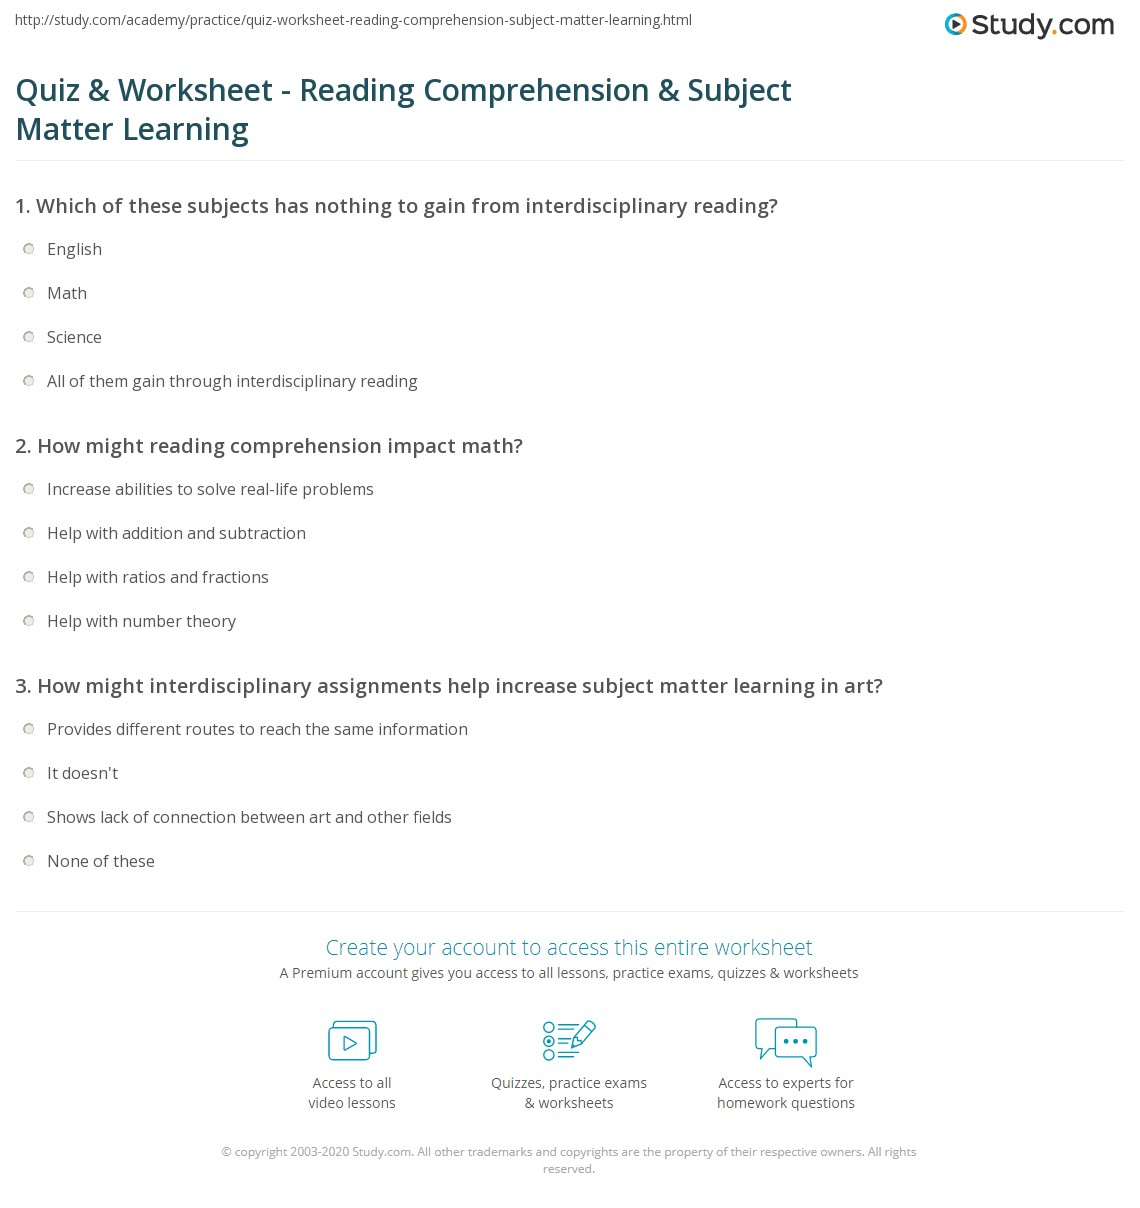 Worksheet Learning Comprehension worksheet learning comprehension wosenly free quiz reading subject matter print how impacts worksheet